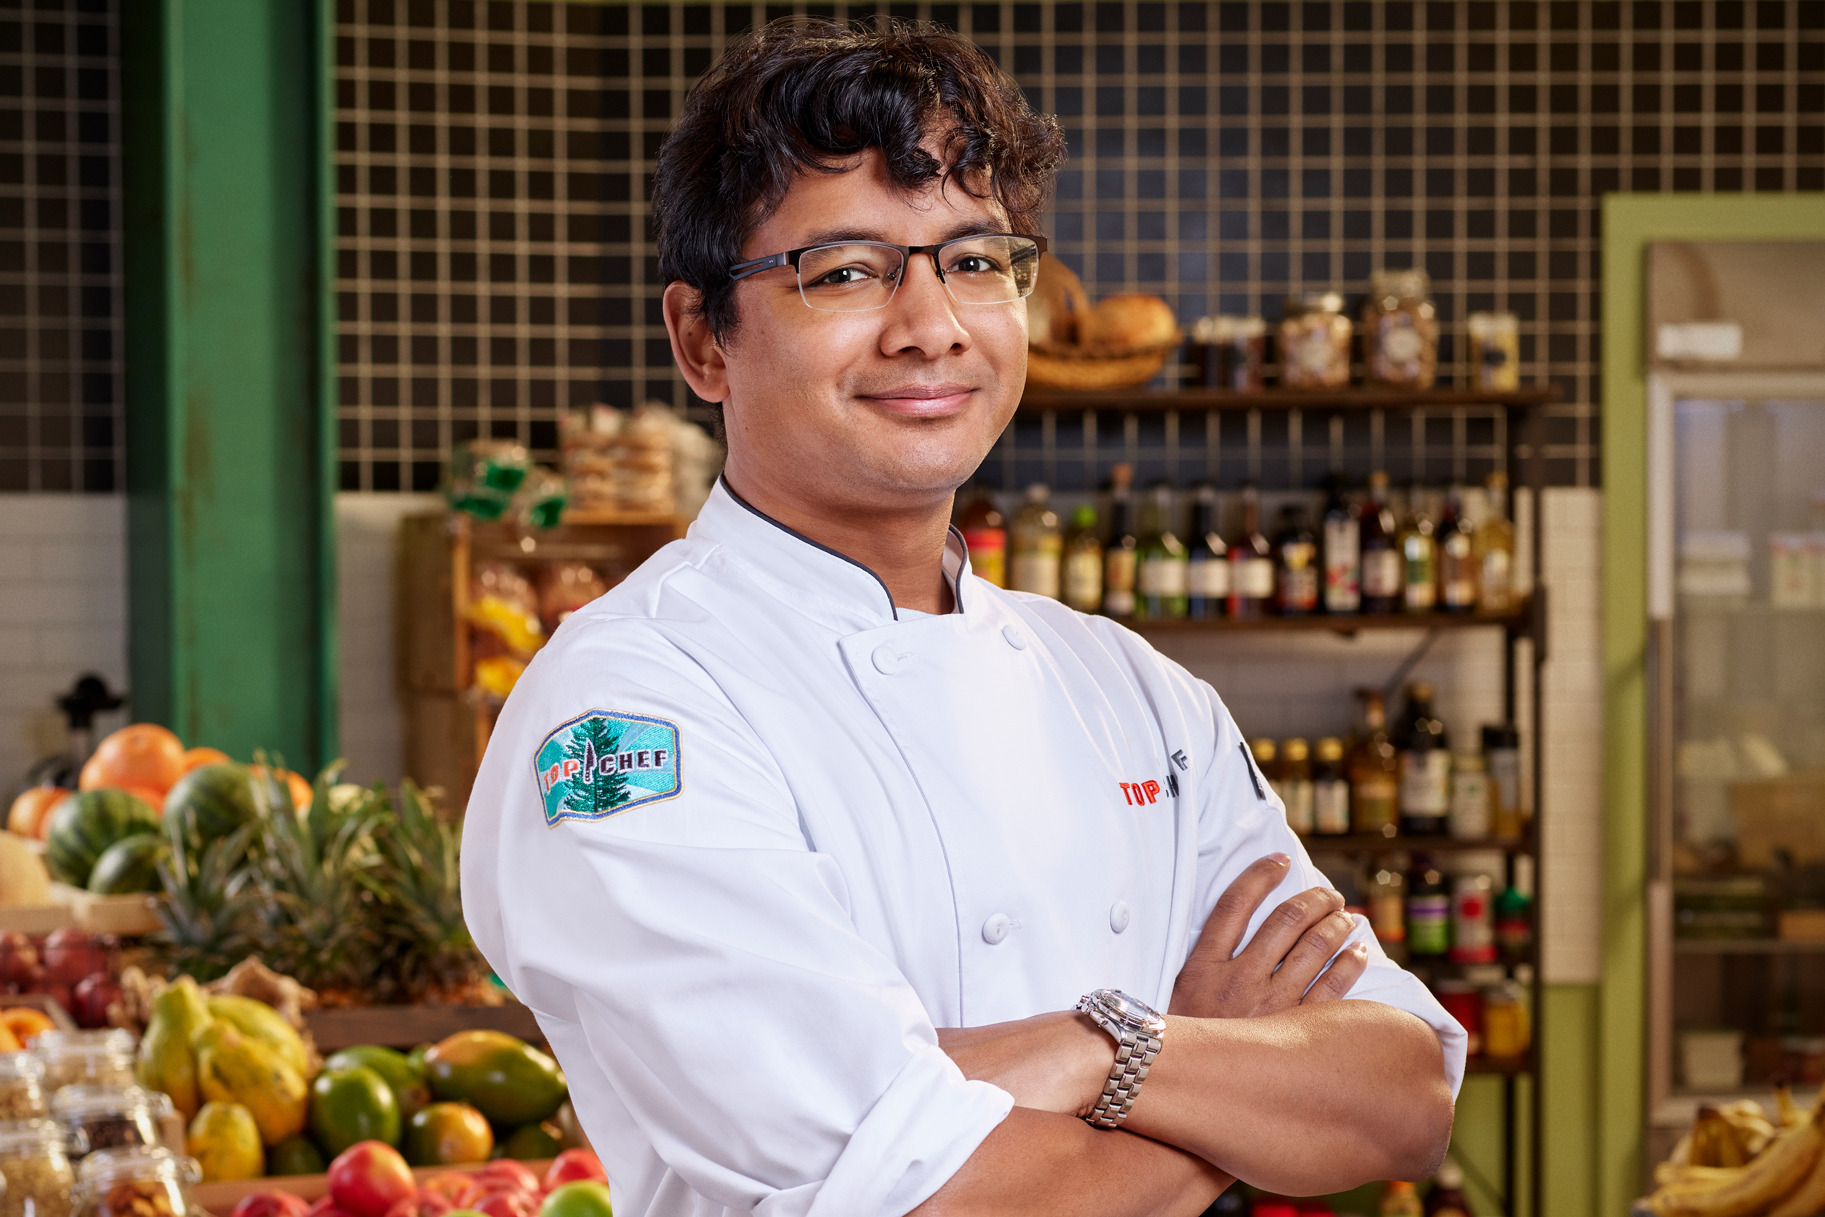 Avishar Barua Top Chef Contestant